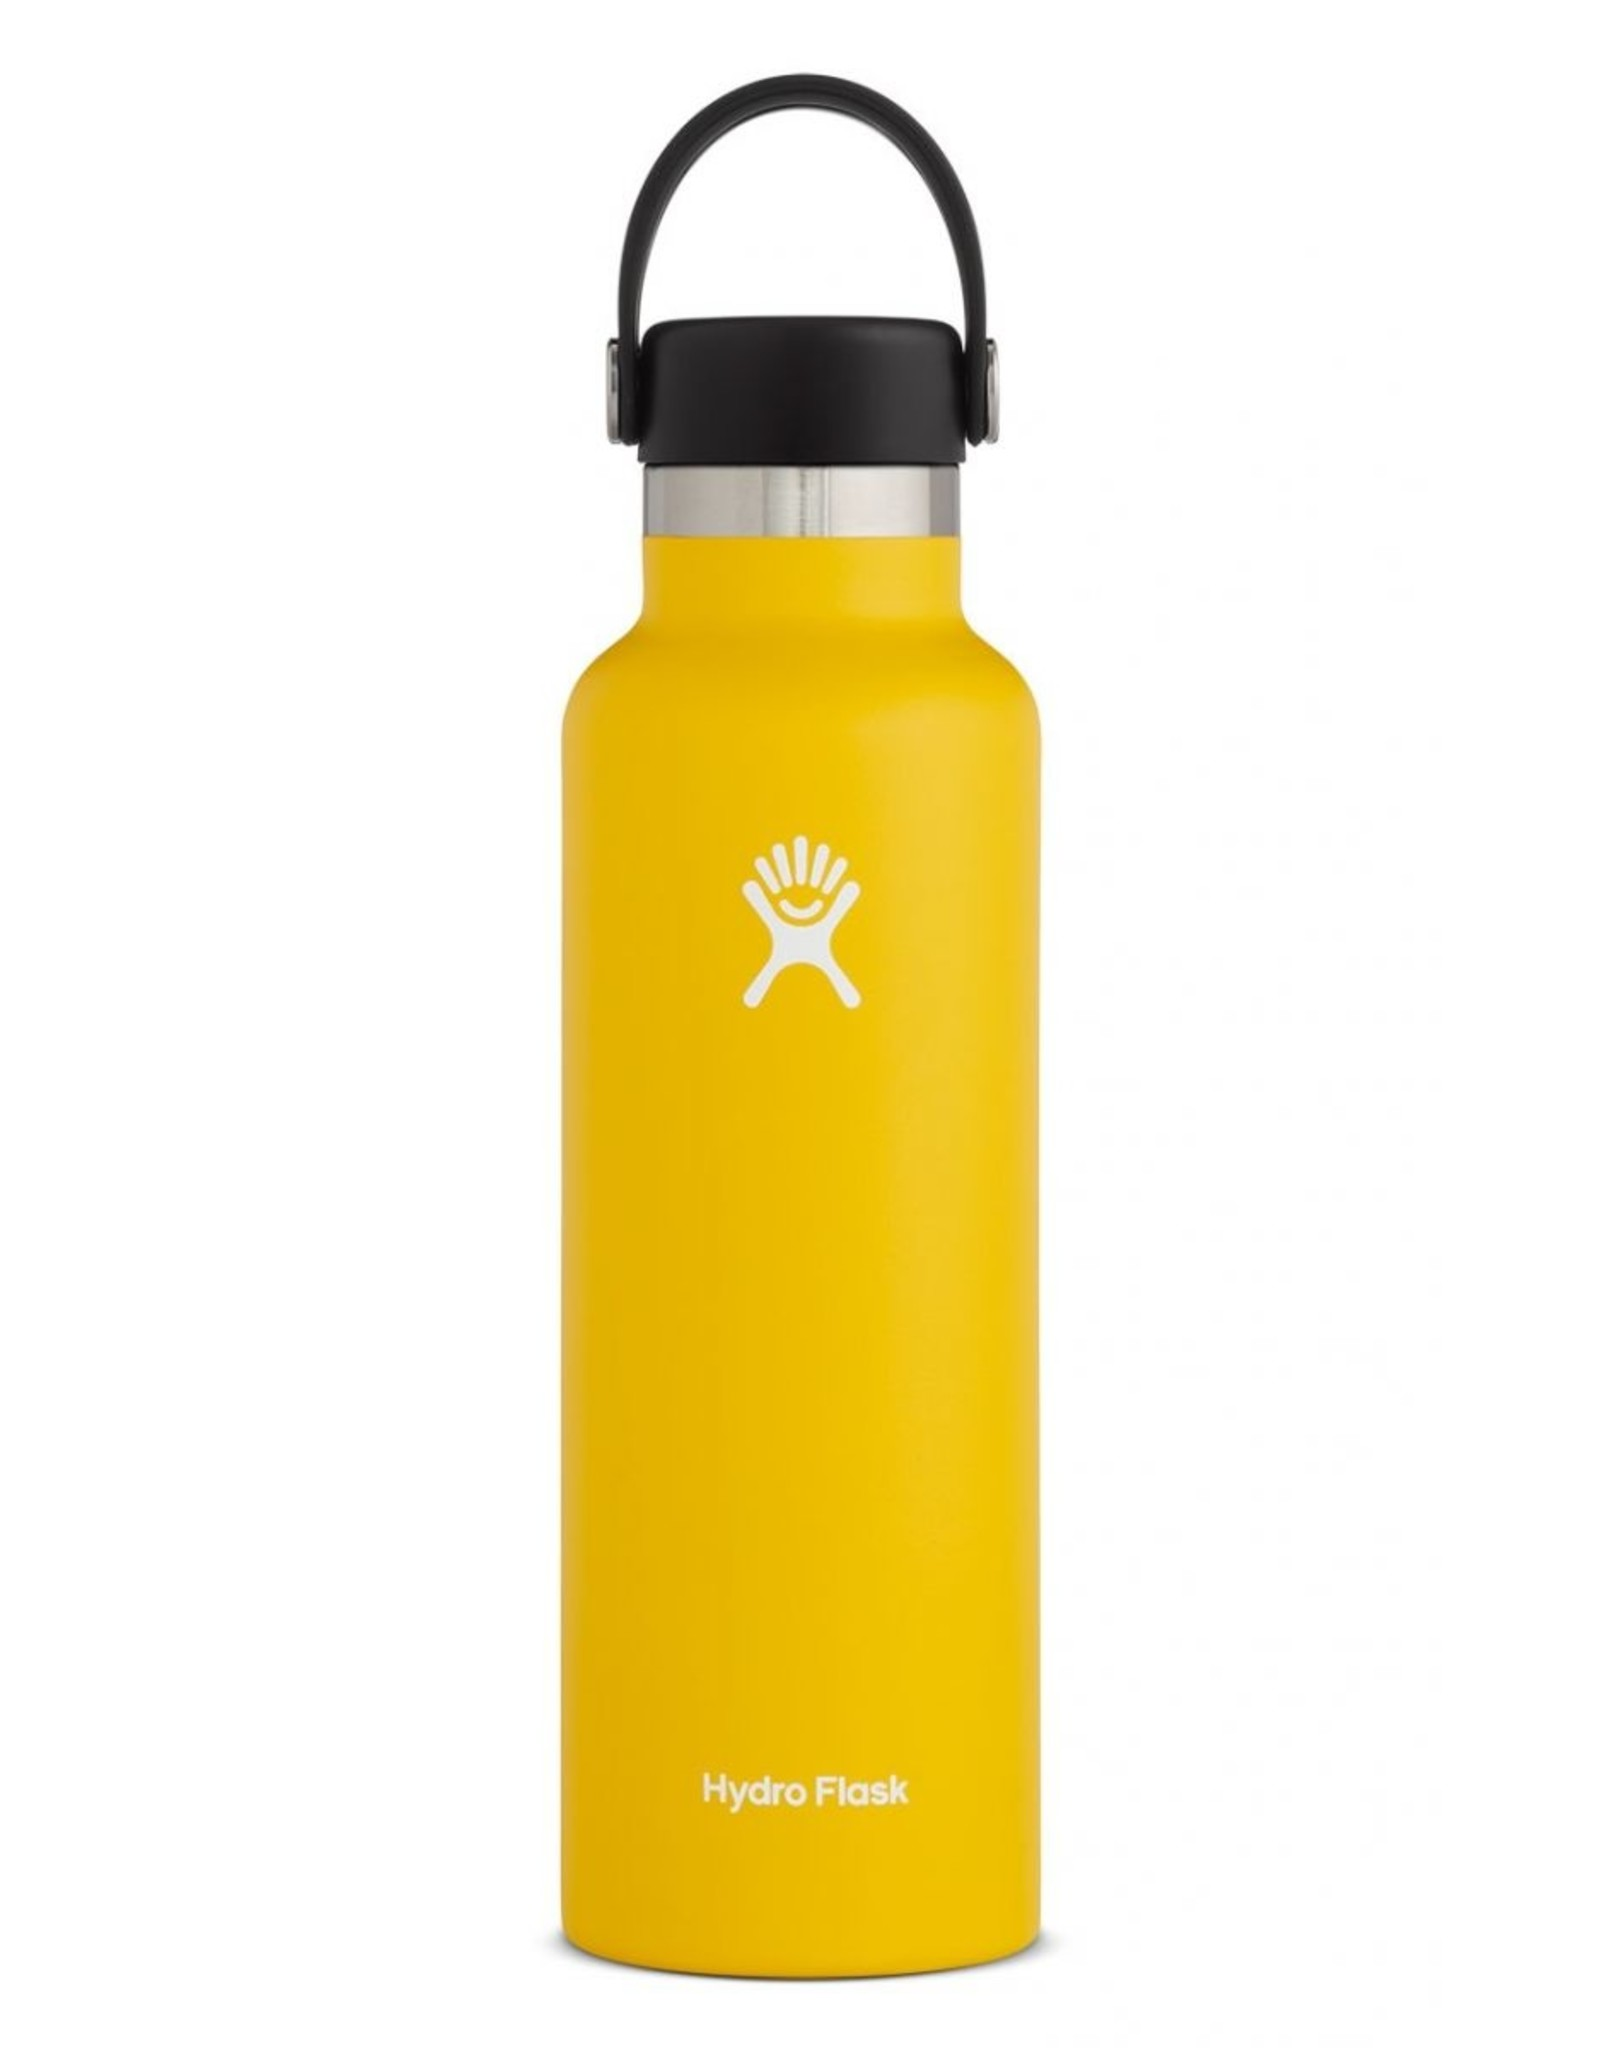 HYDRO FLASK HYDRO FLASK 21OZ STANDARD MOUTH BOTTLE-SUNFLOWER